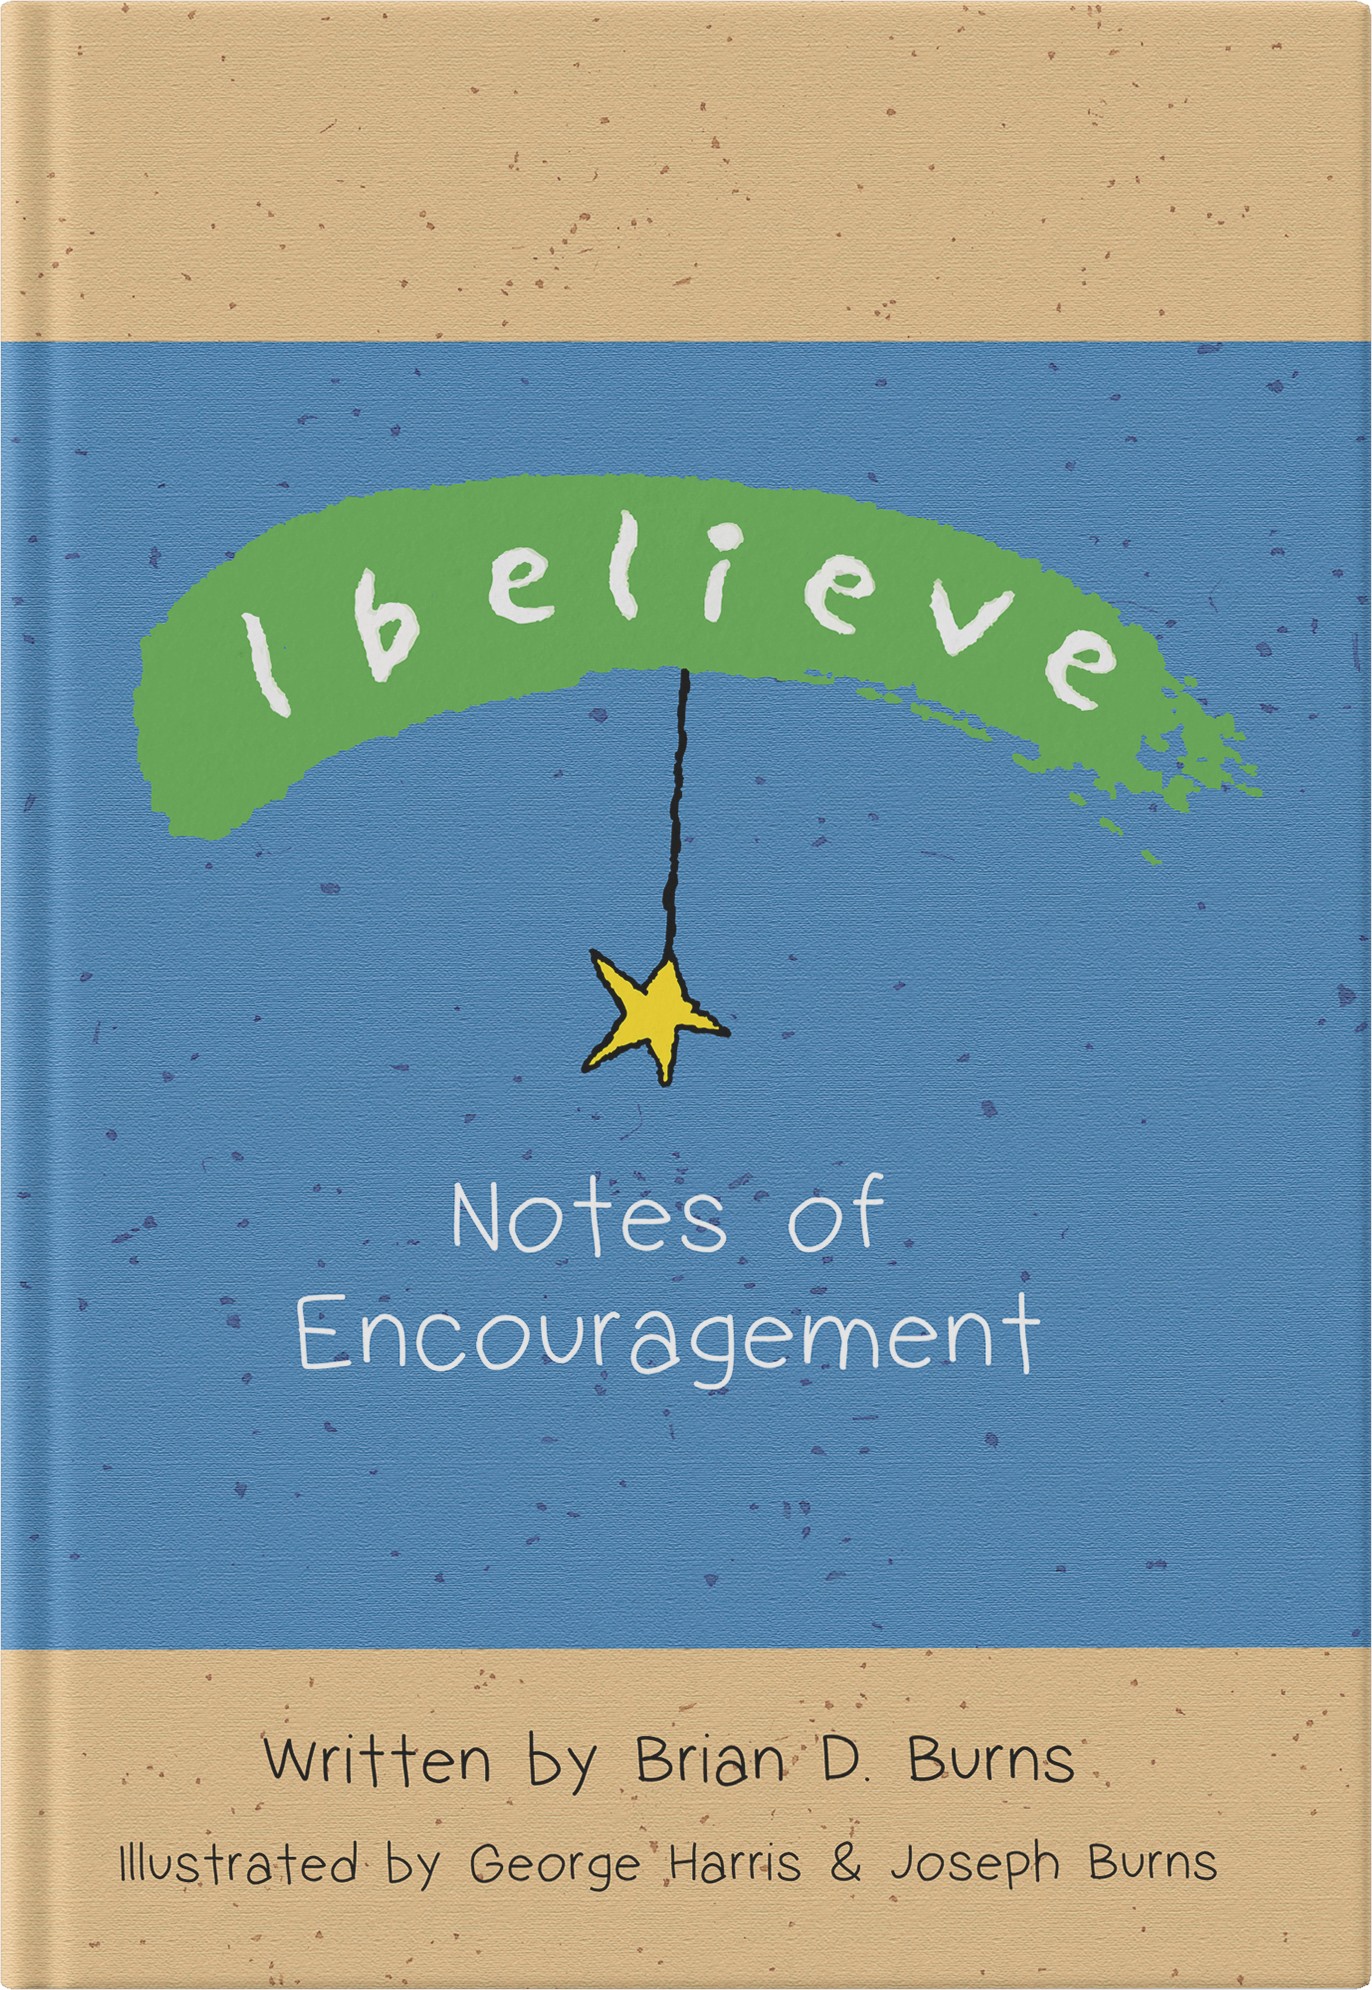 i-believe-notes-of-encouragement-mockup-01-cropped